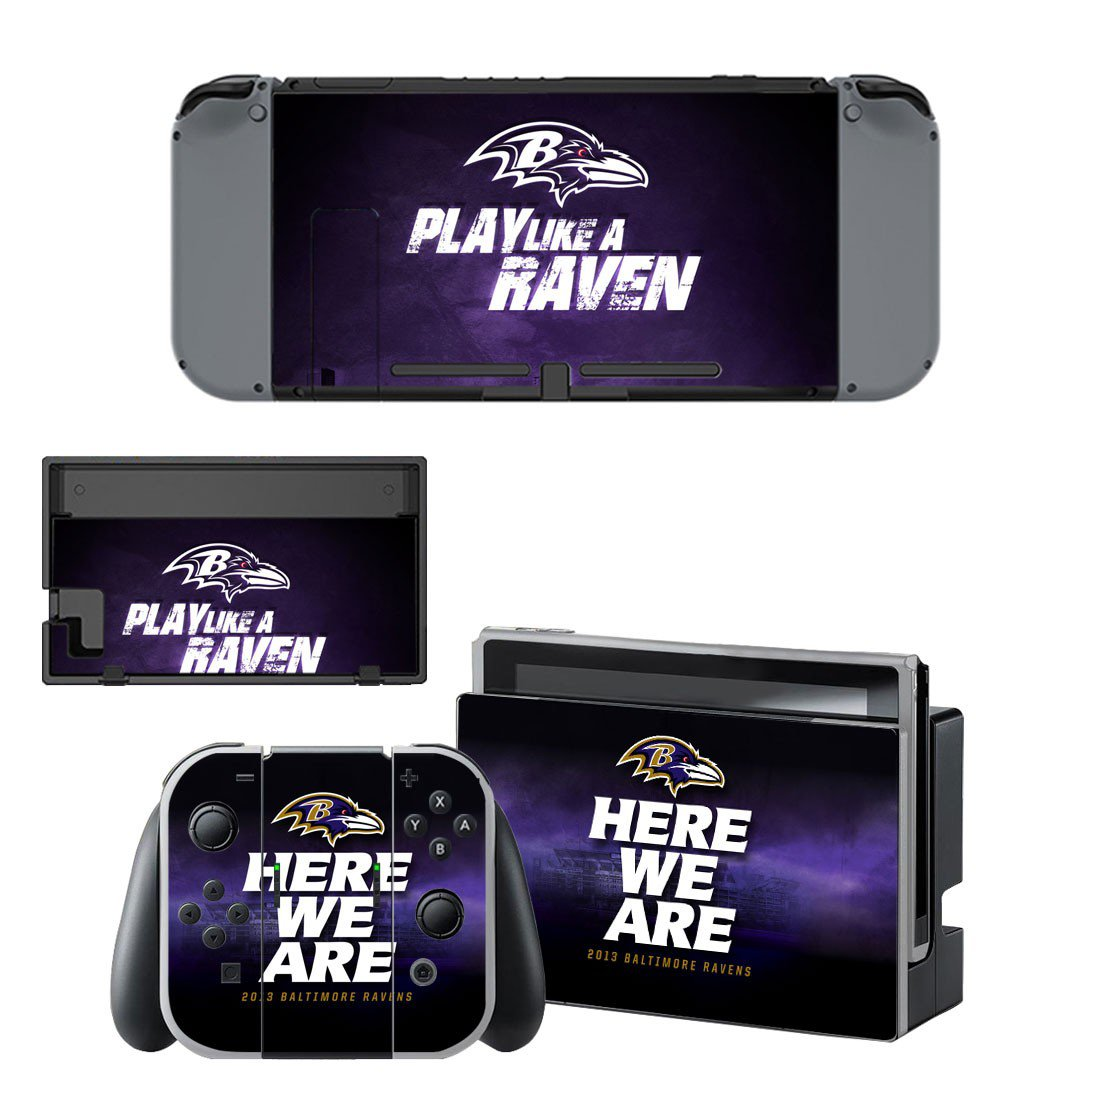 Baltimore Ravens decal skin sticker for Nintendo Switch console and controllers